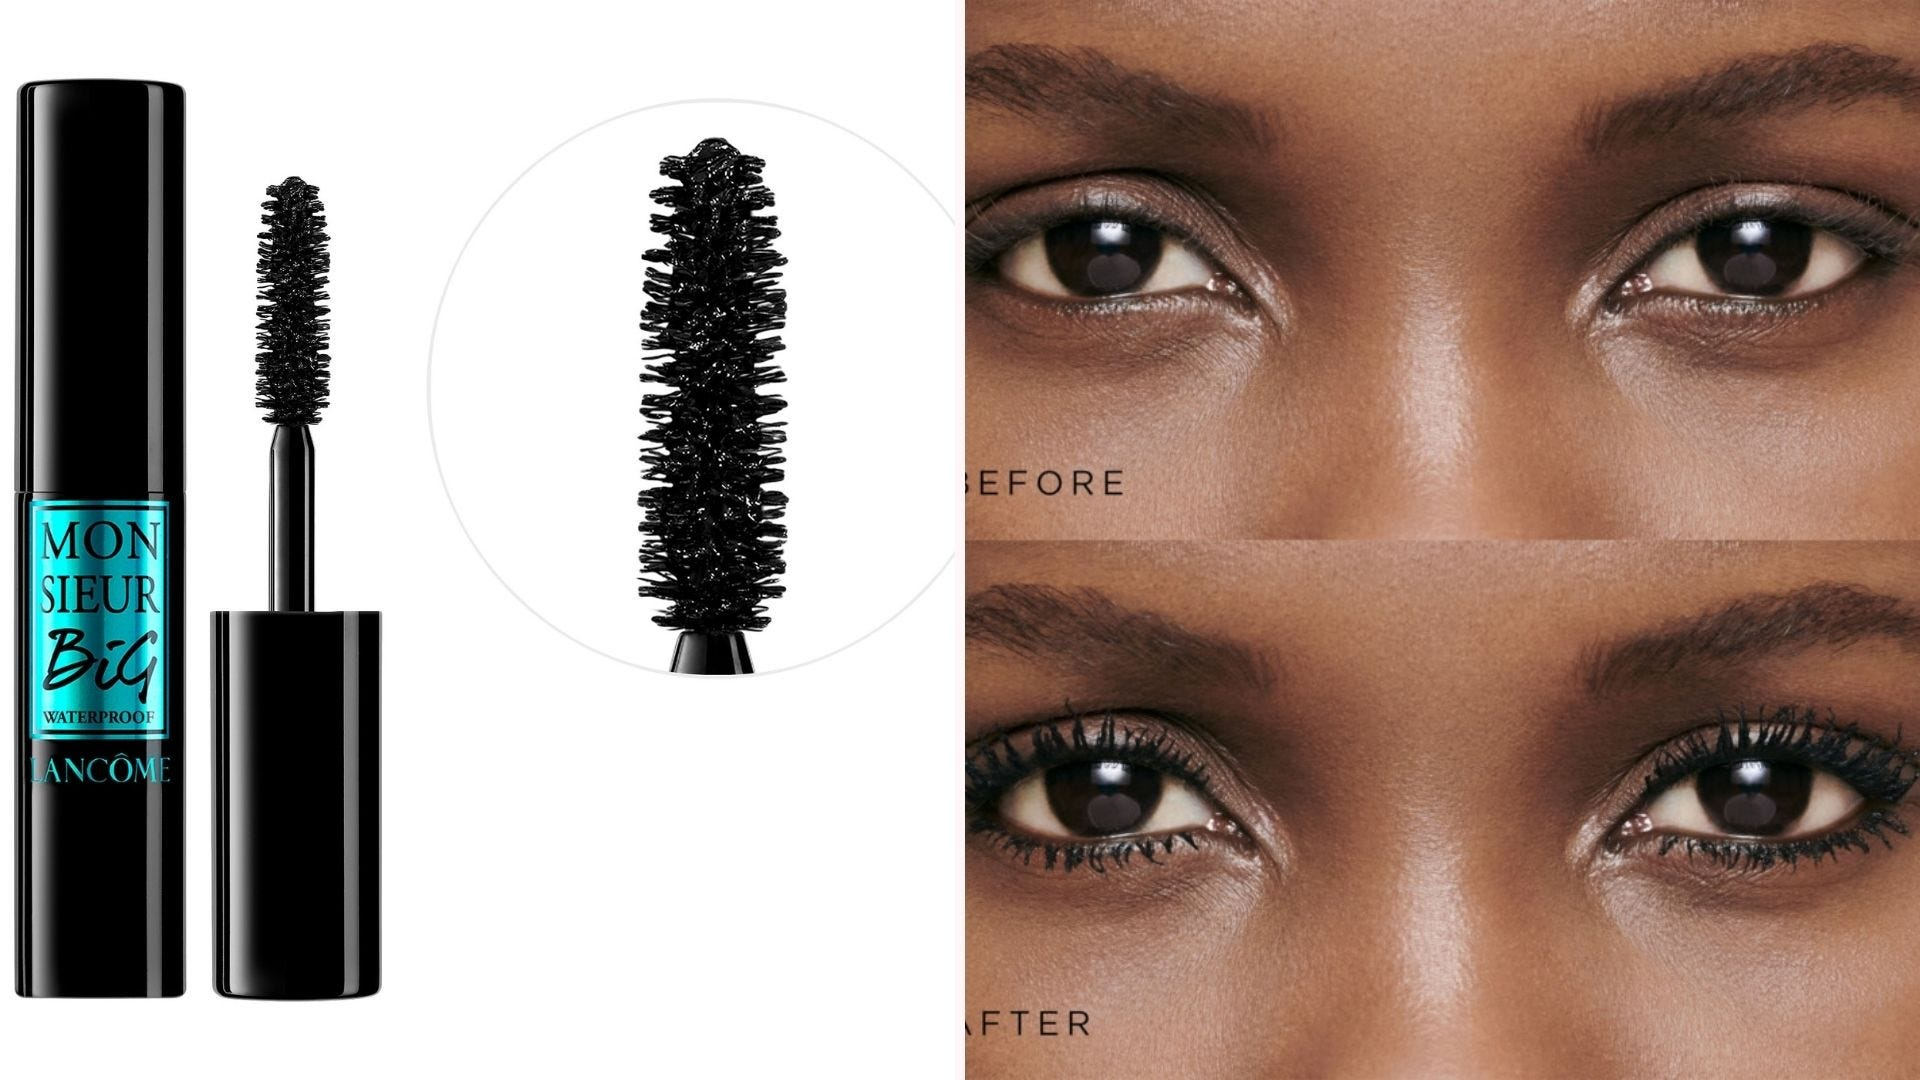 A black tube of mascara with the wand out; a before-and-after image of a woman's eyes using mascara